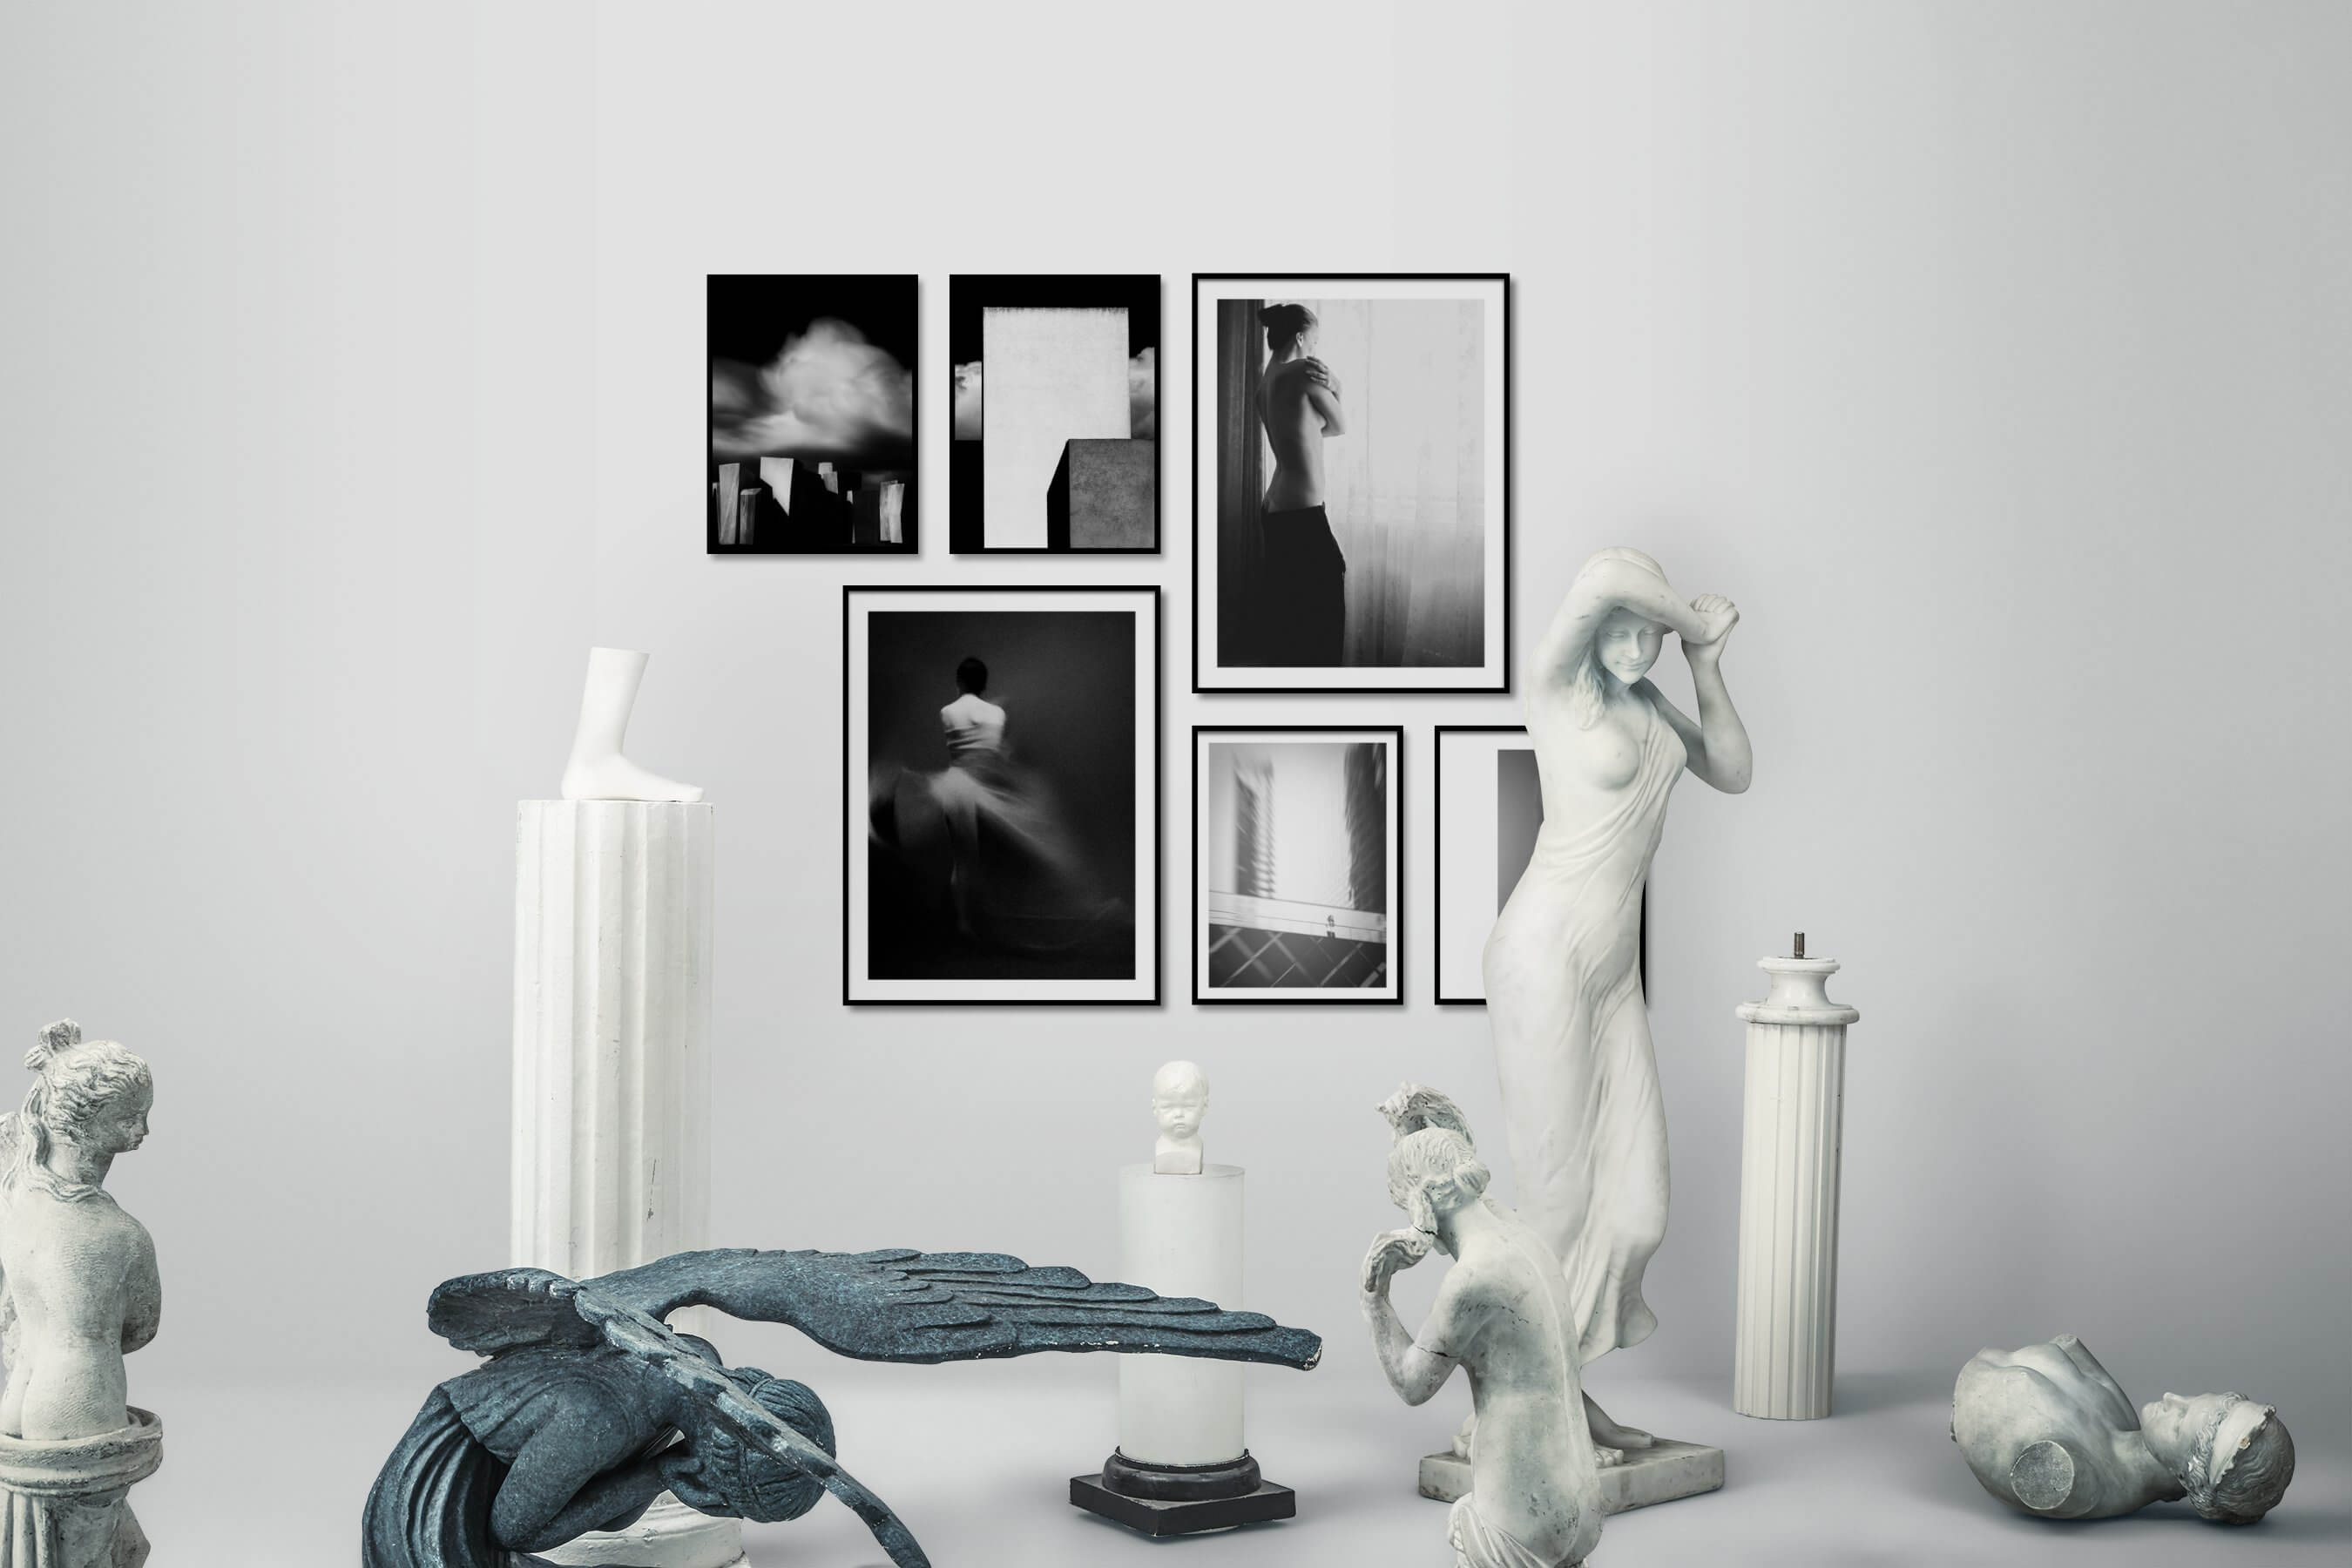 Gallery wall idea with six framed pictures arranged on a wall depicting Black & White, Dark Tones, For the Moderate, For the Minimalist, Fashion & Beauty, and City Life